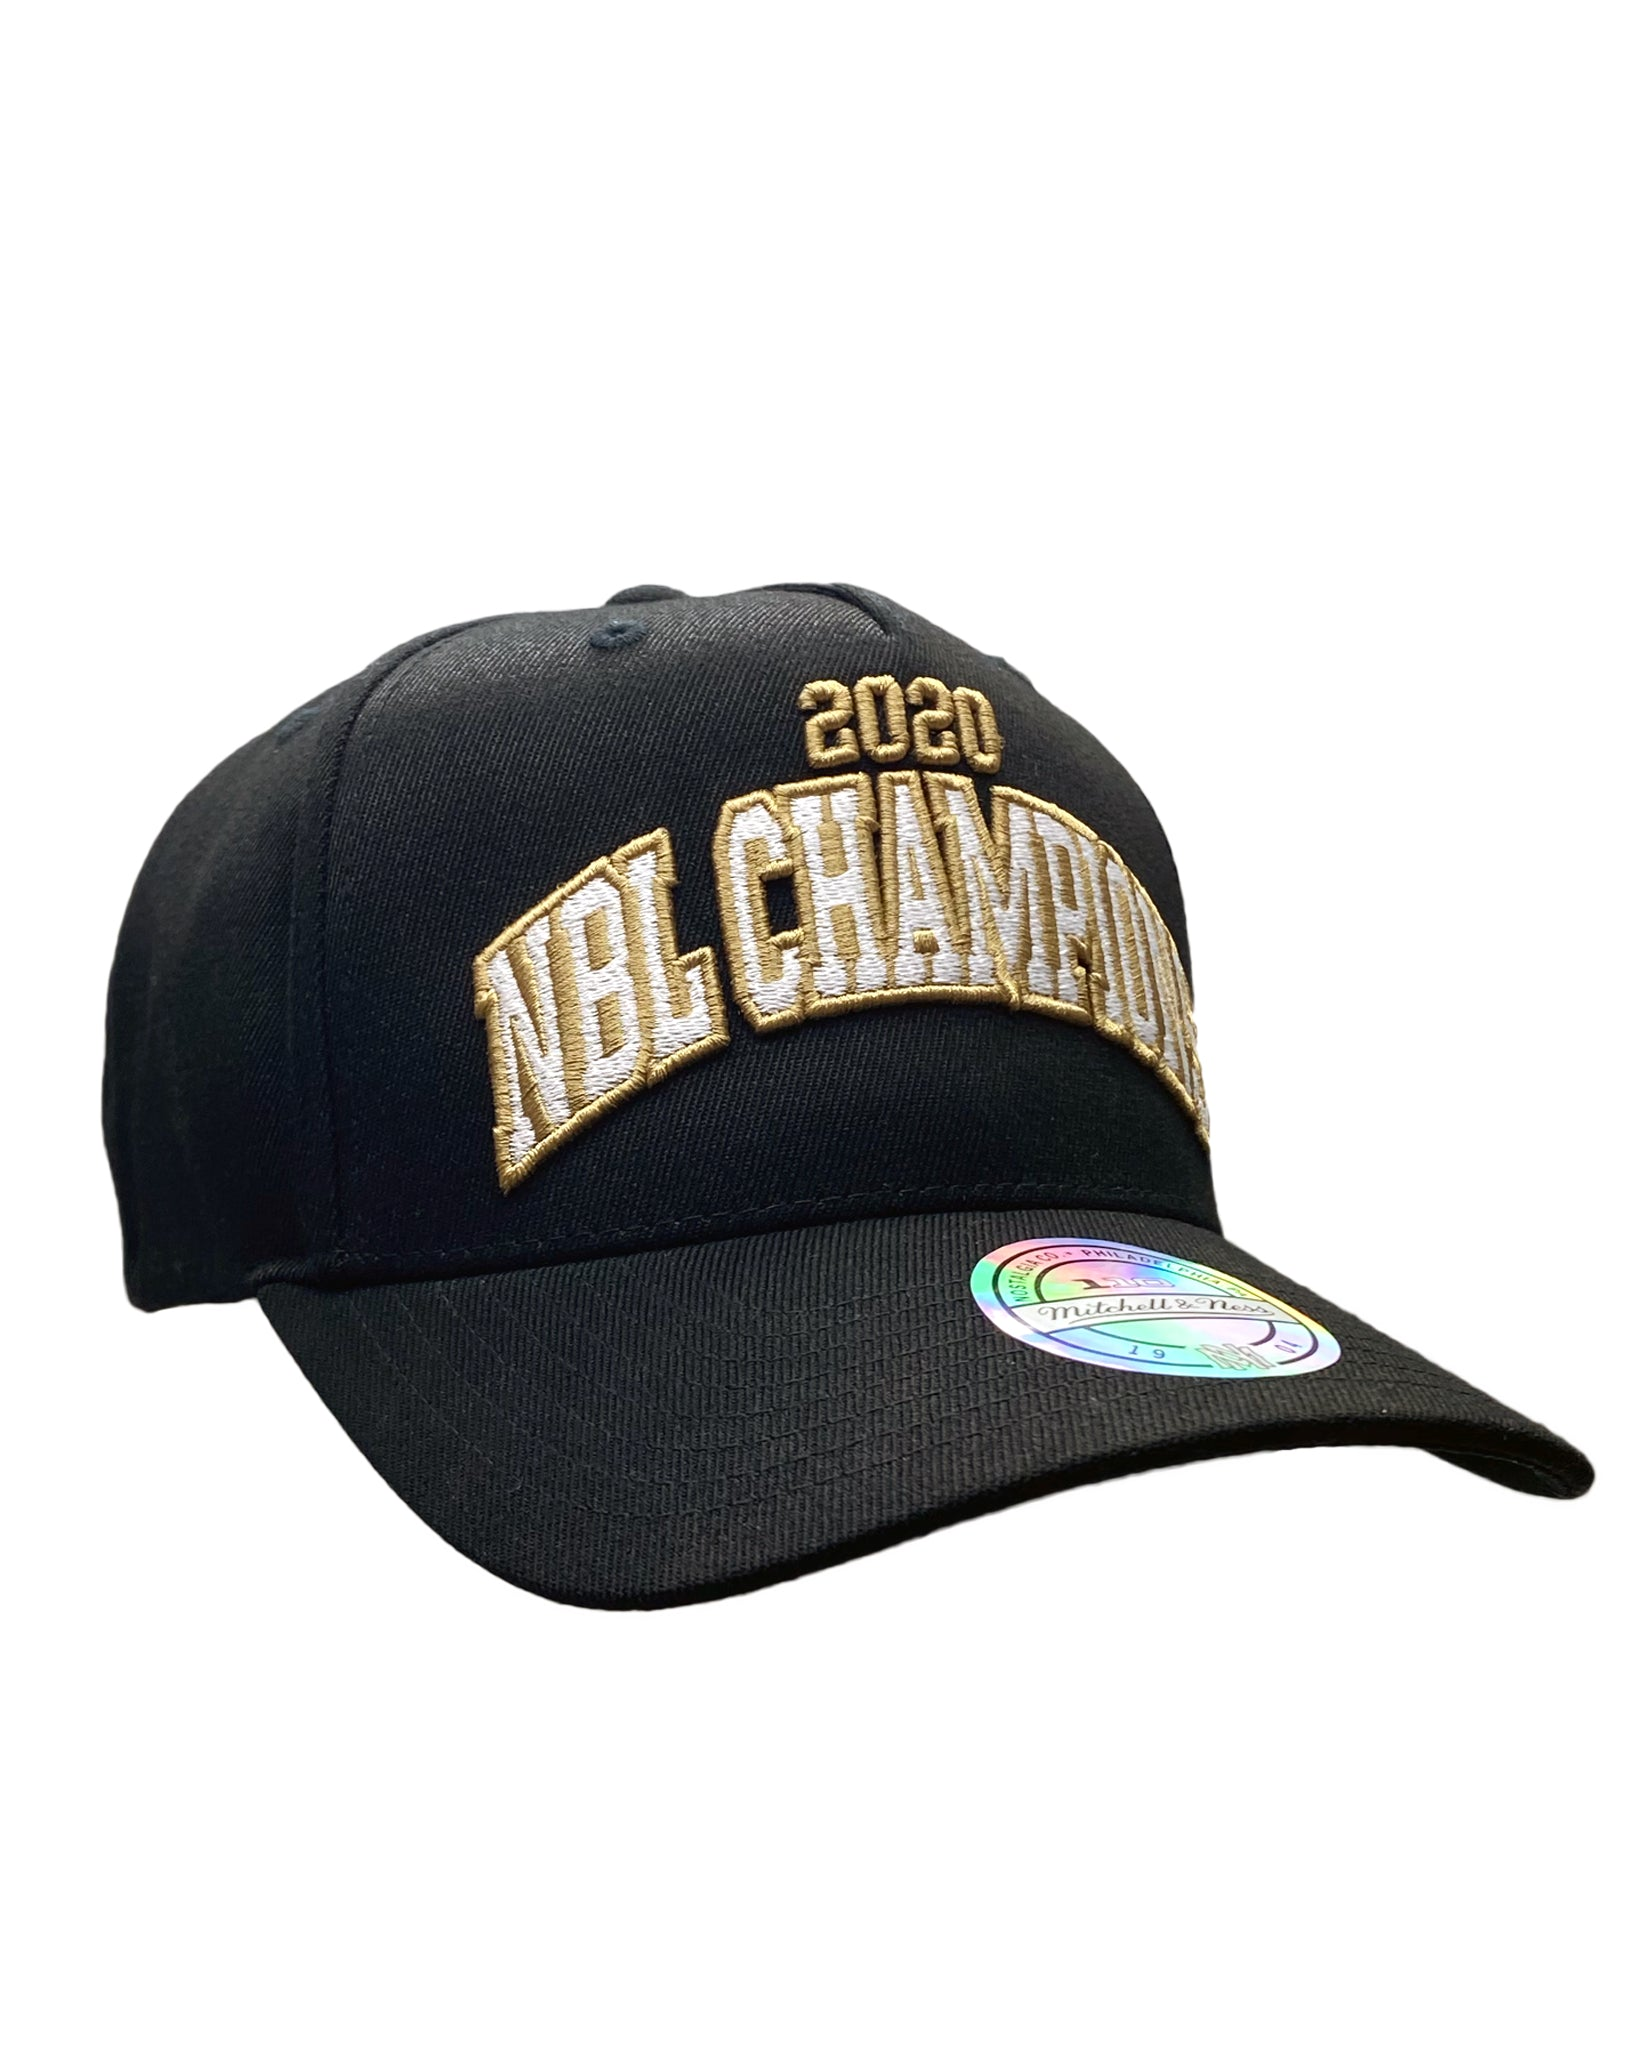 Perth Wildcats 19/20 Players Champions Cap